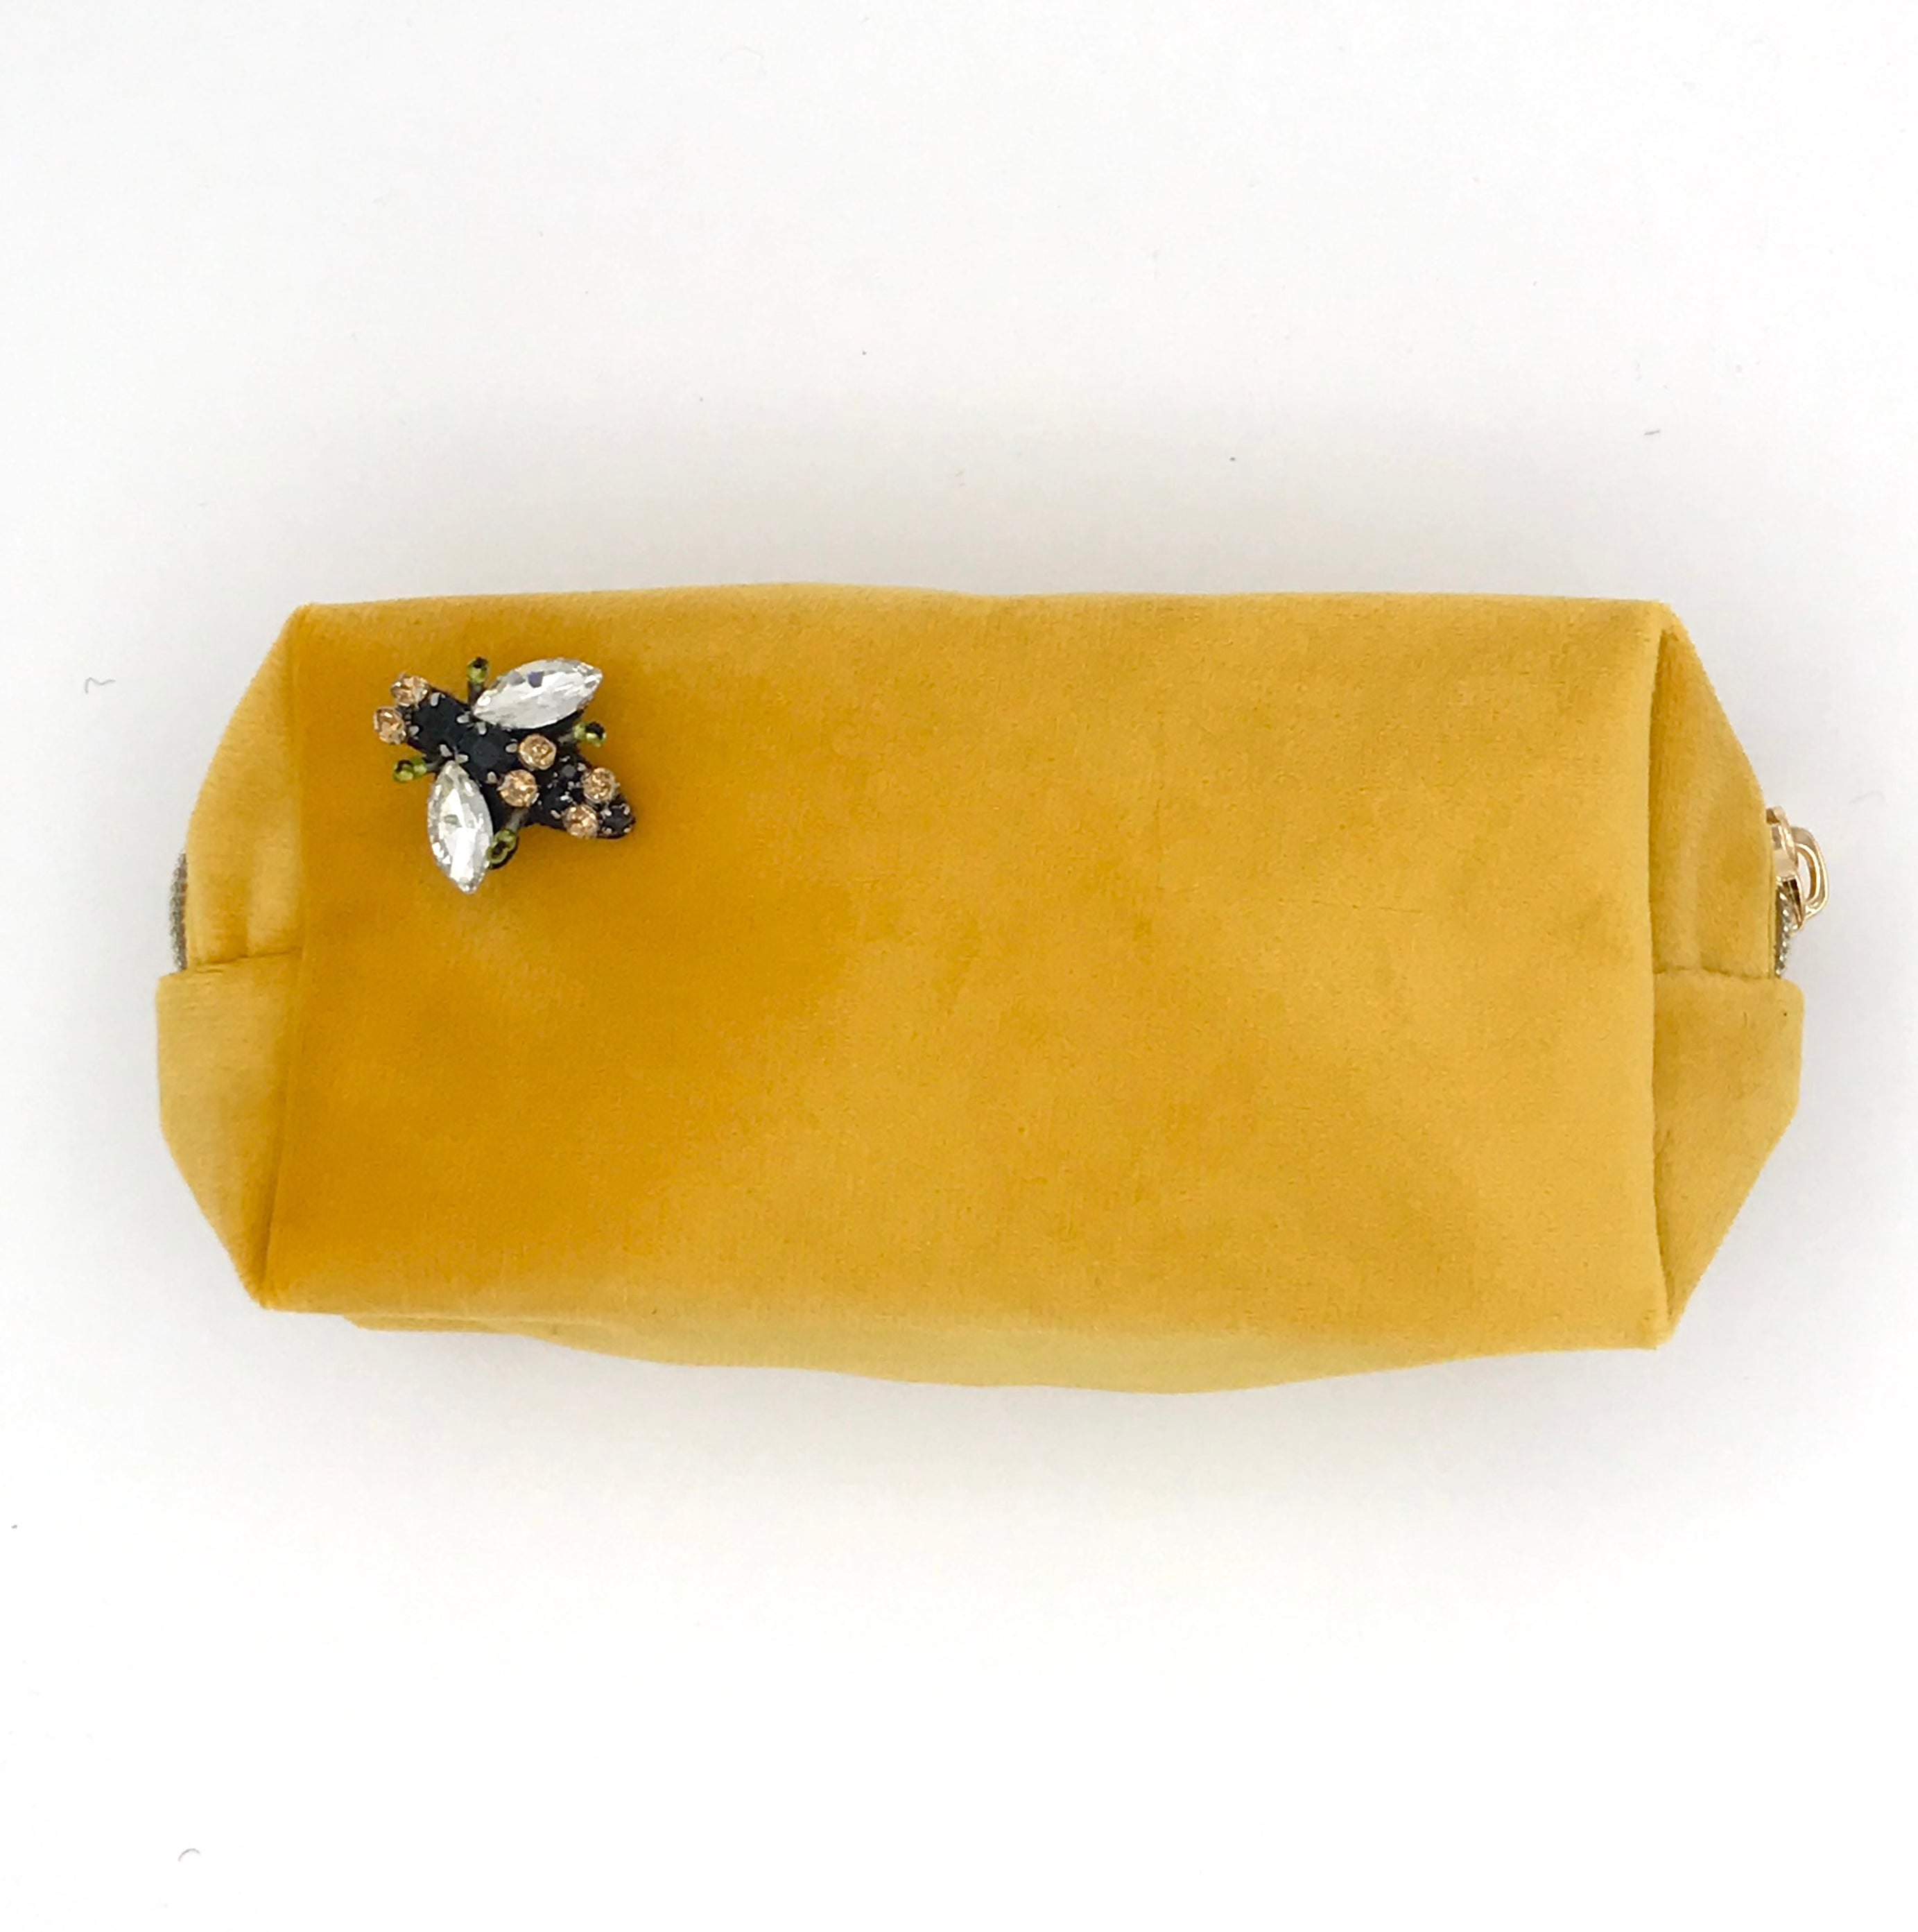 Velvet make-up bag in amber with a bumblebee pin